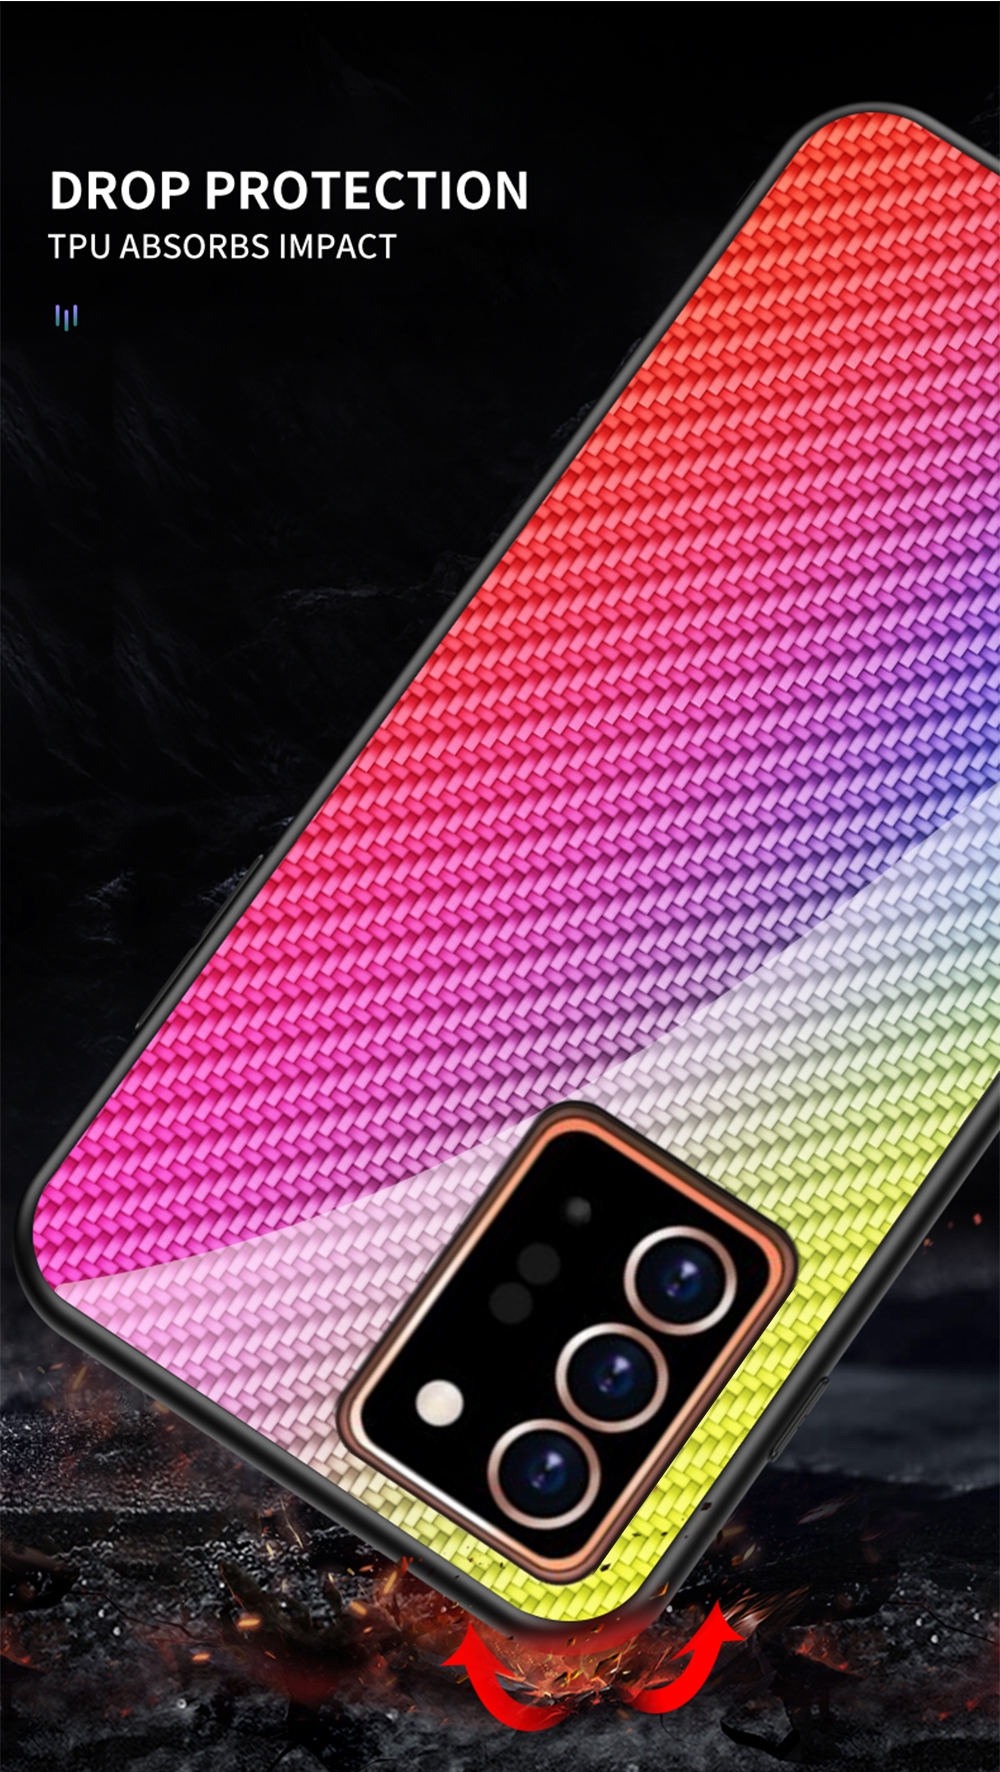 XUANYAO Case Cover For Samsung Galaxy Note 20 Plus Case Glass Hard Cover For Samsung Galaxy Note 20 Ultra Case Slim Carbon Fiber (11)